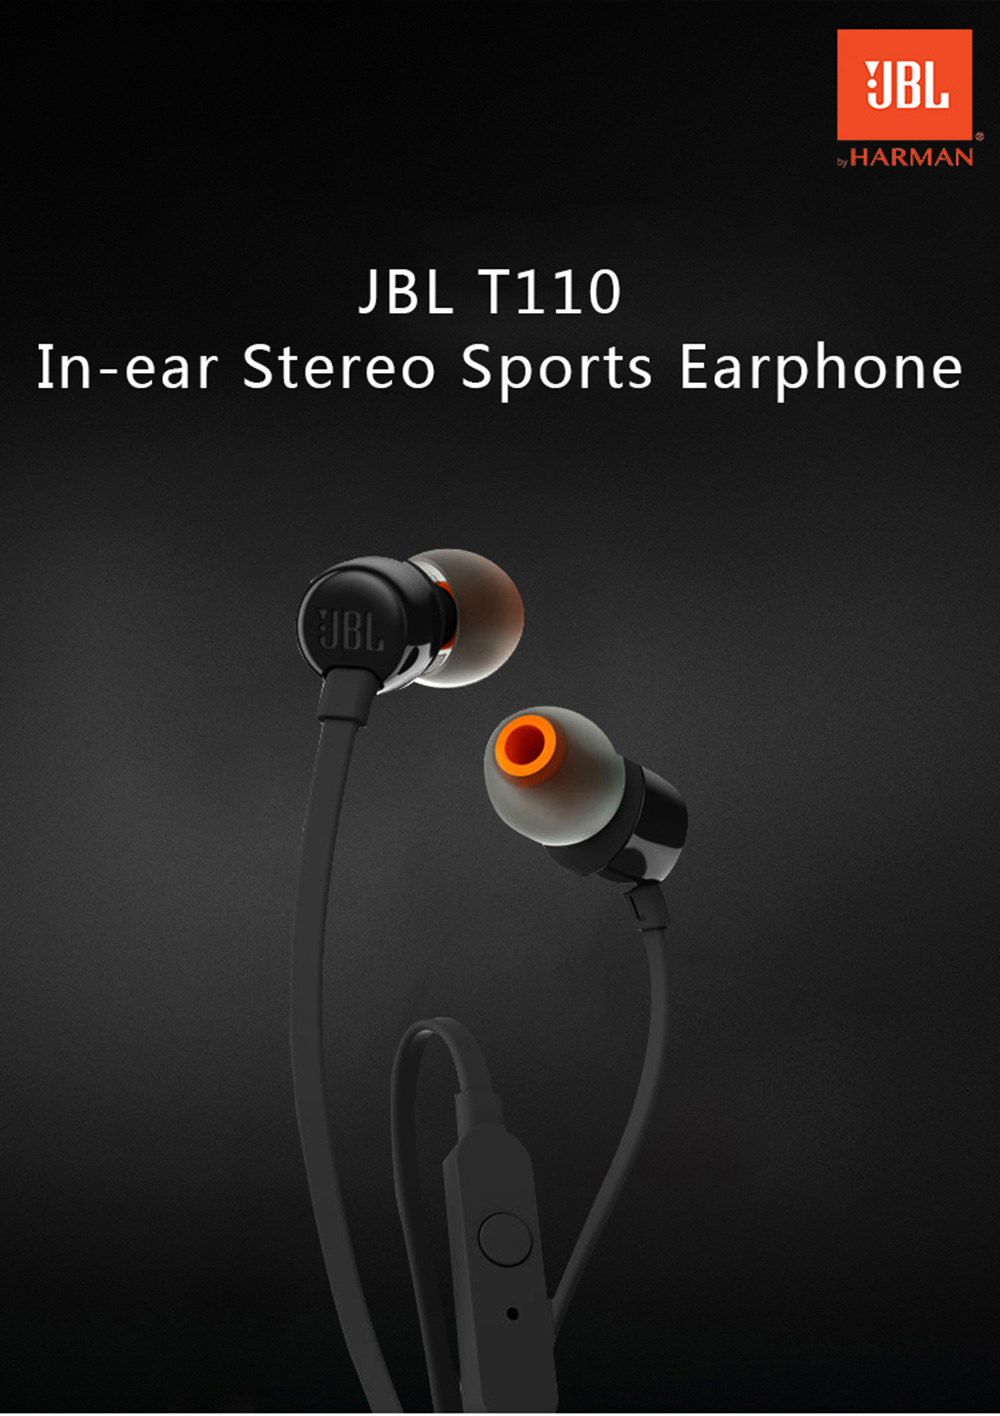 Jbl Bass Jbl T110 In Ear Stereo Sports Earphone Hifi Bass Earbuds